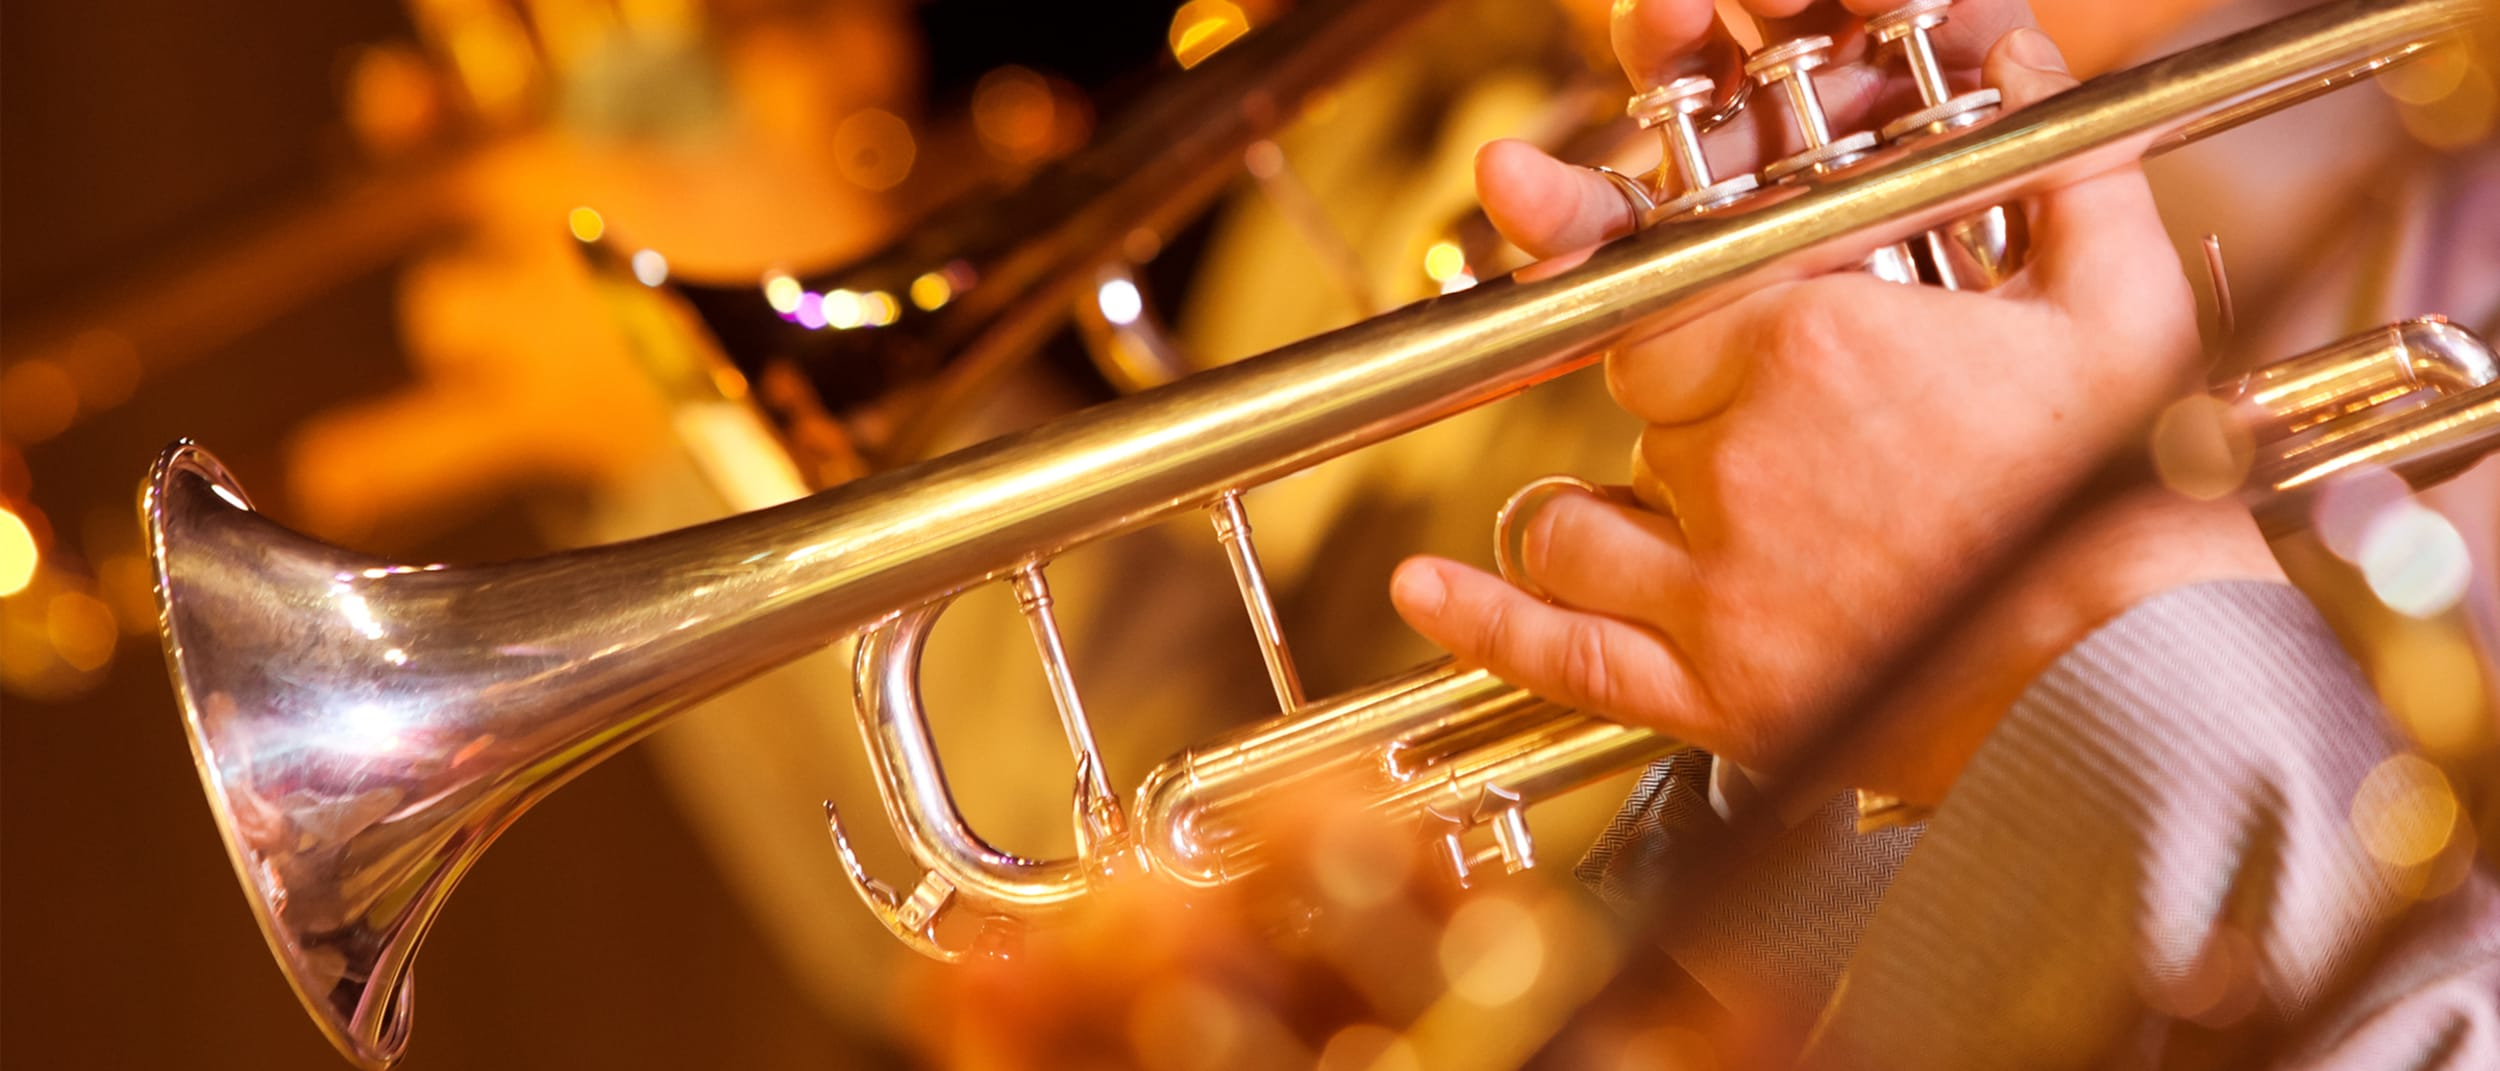 The Salvation Army Brass Band apperances